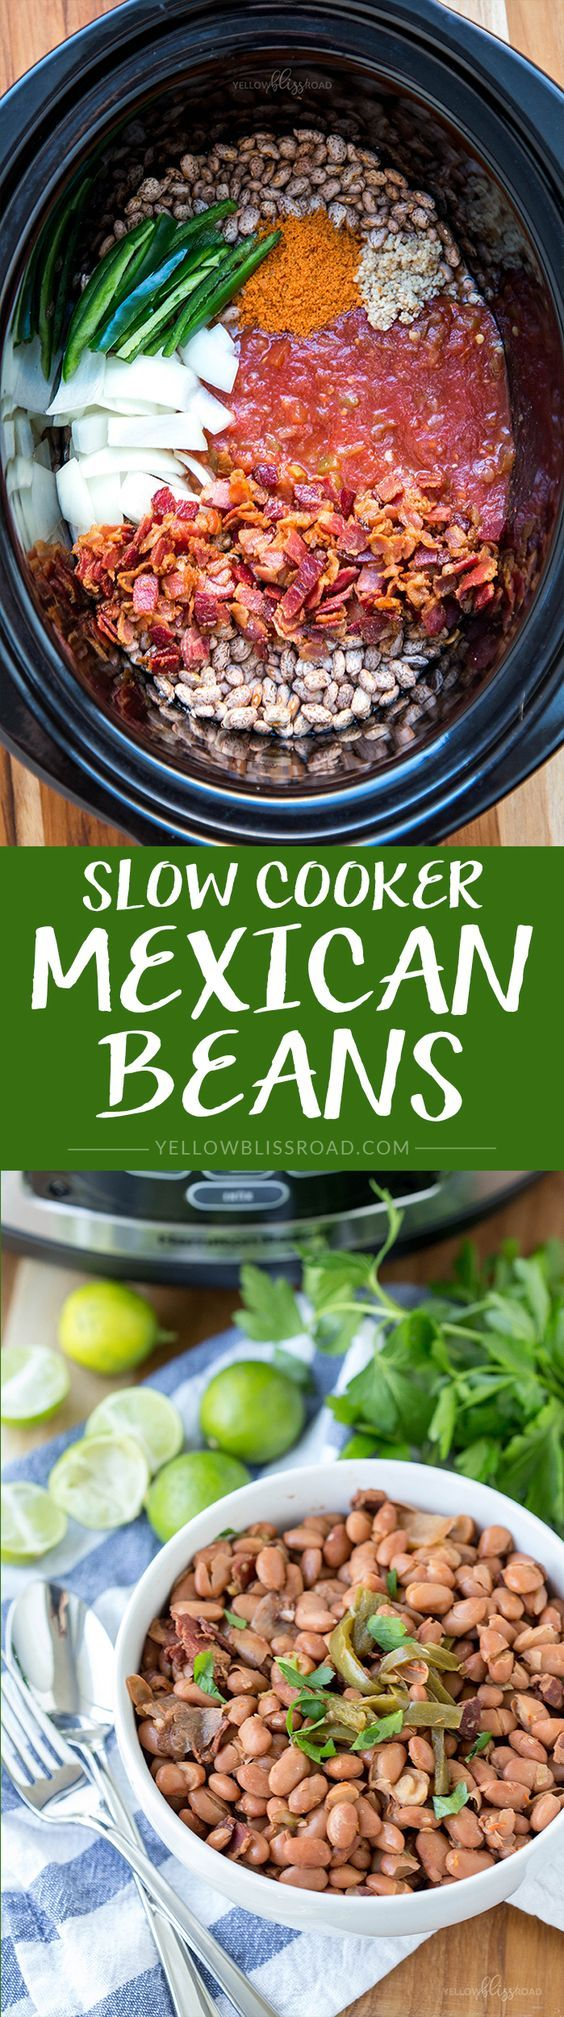 Slow Cooker Mexican Beans #mexicandishes